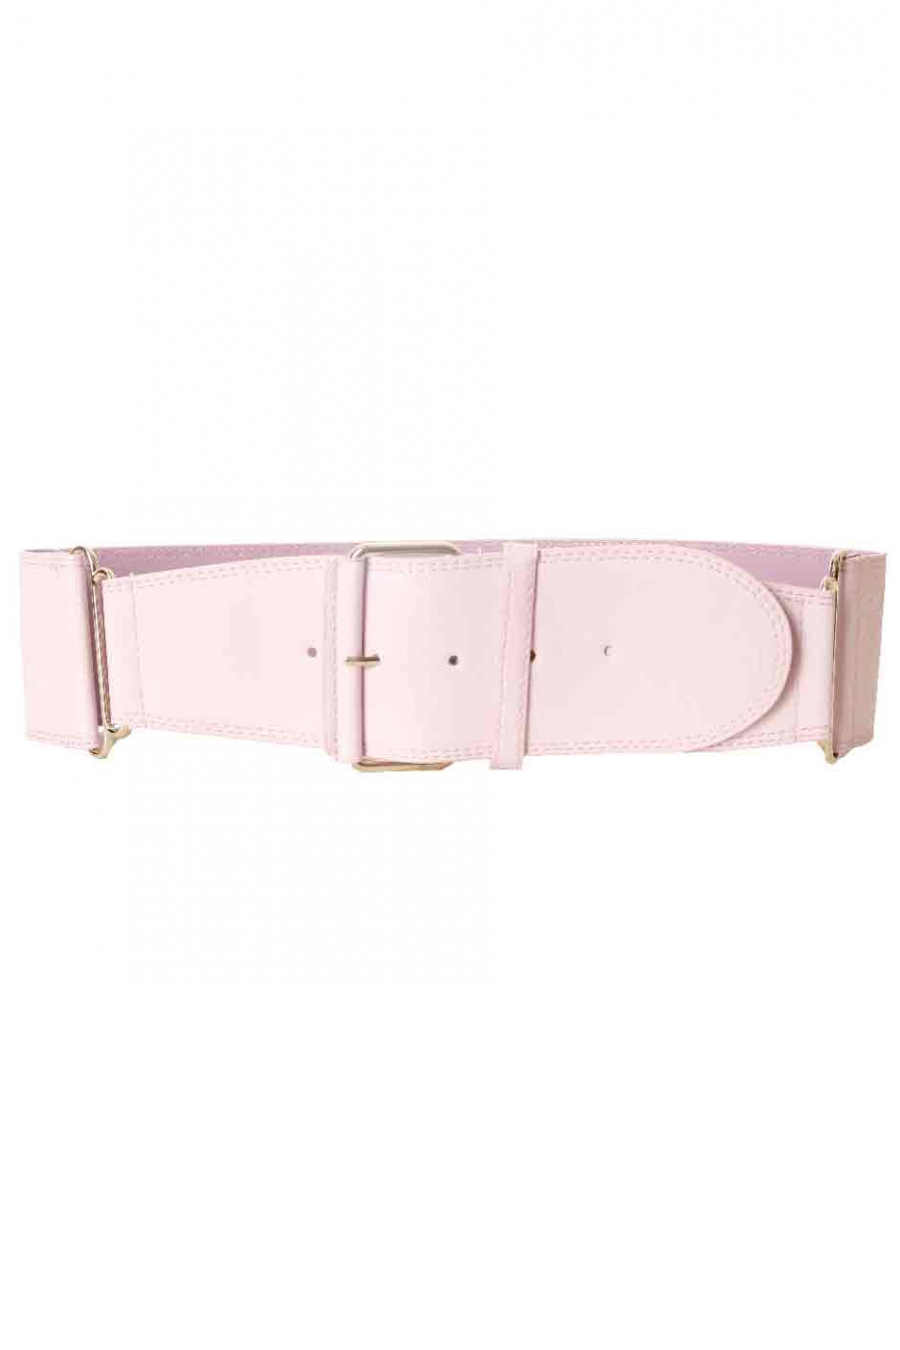 Large Parma belt with tightening buckle SG-0418